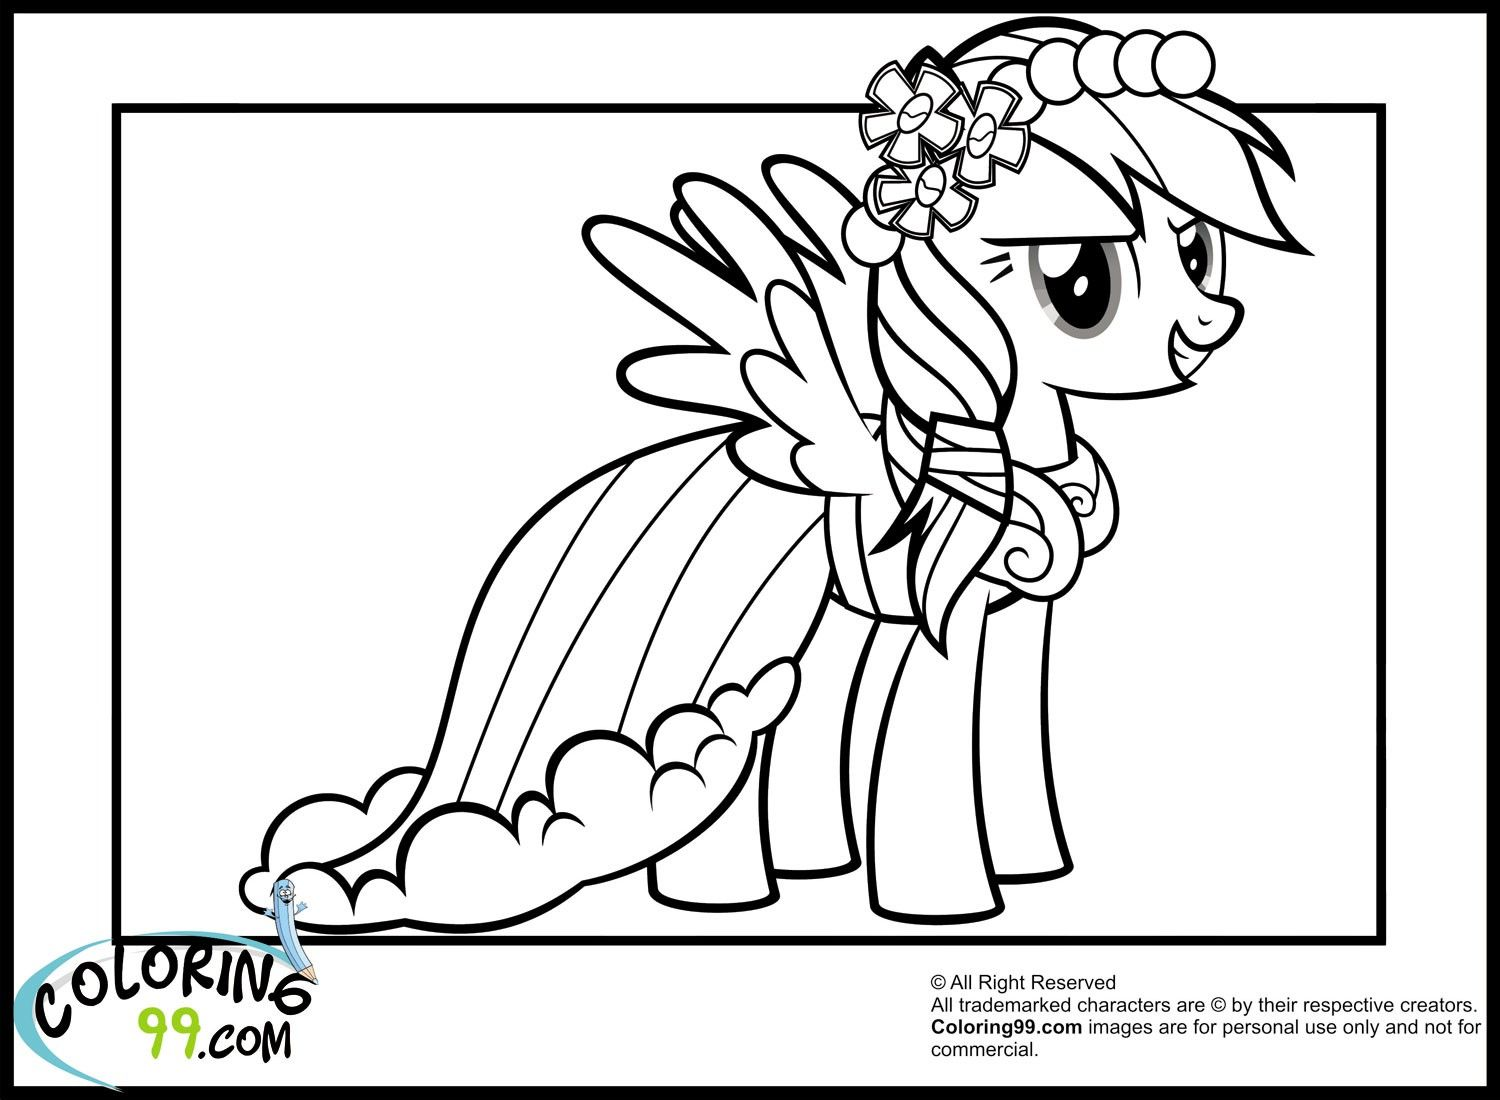 Princess Rainbow Dash Coloring Pages From The Thousands Of Pictures On The Internet In Mermaid Coloring Pages Cartoon Coloring Pages Princess Coloring Pages